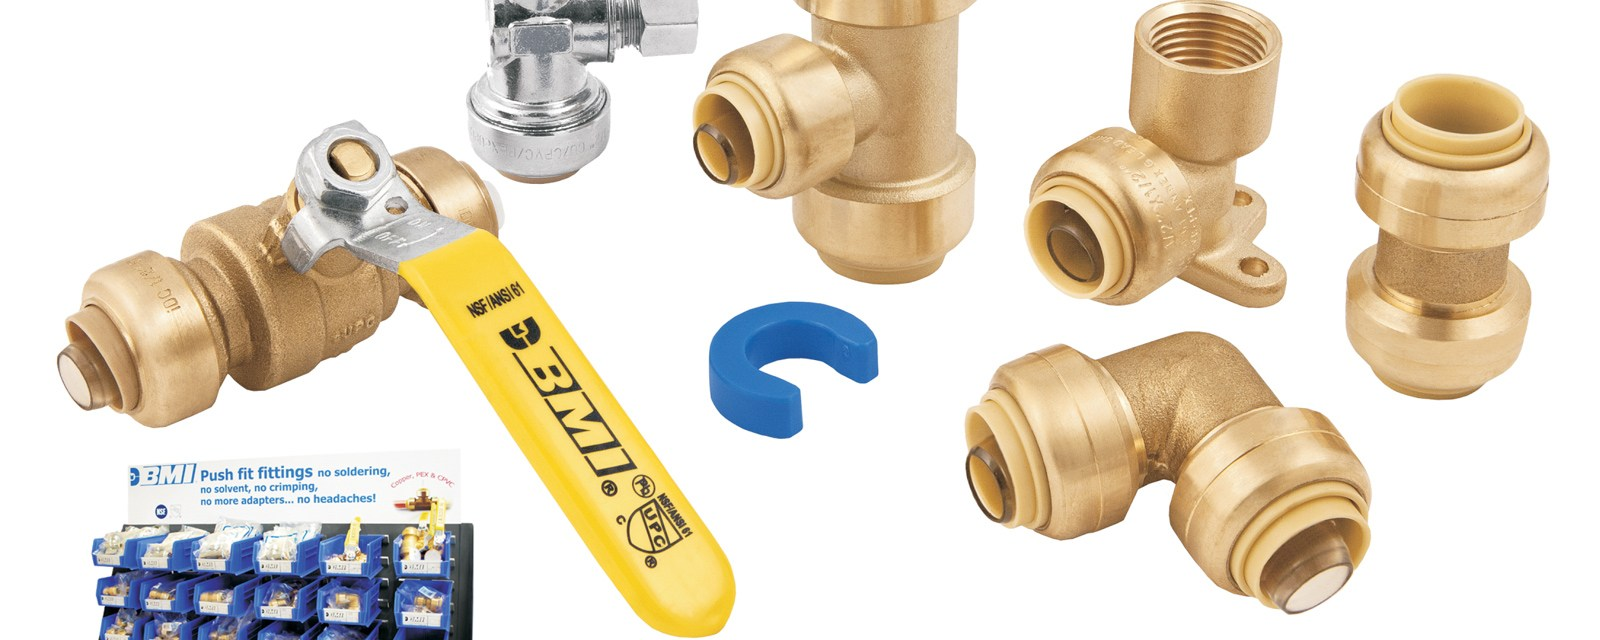 BMI Push Fit Fittings Wider